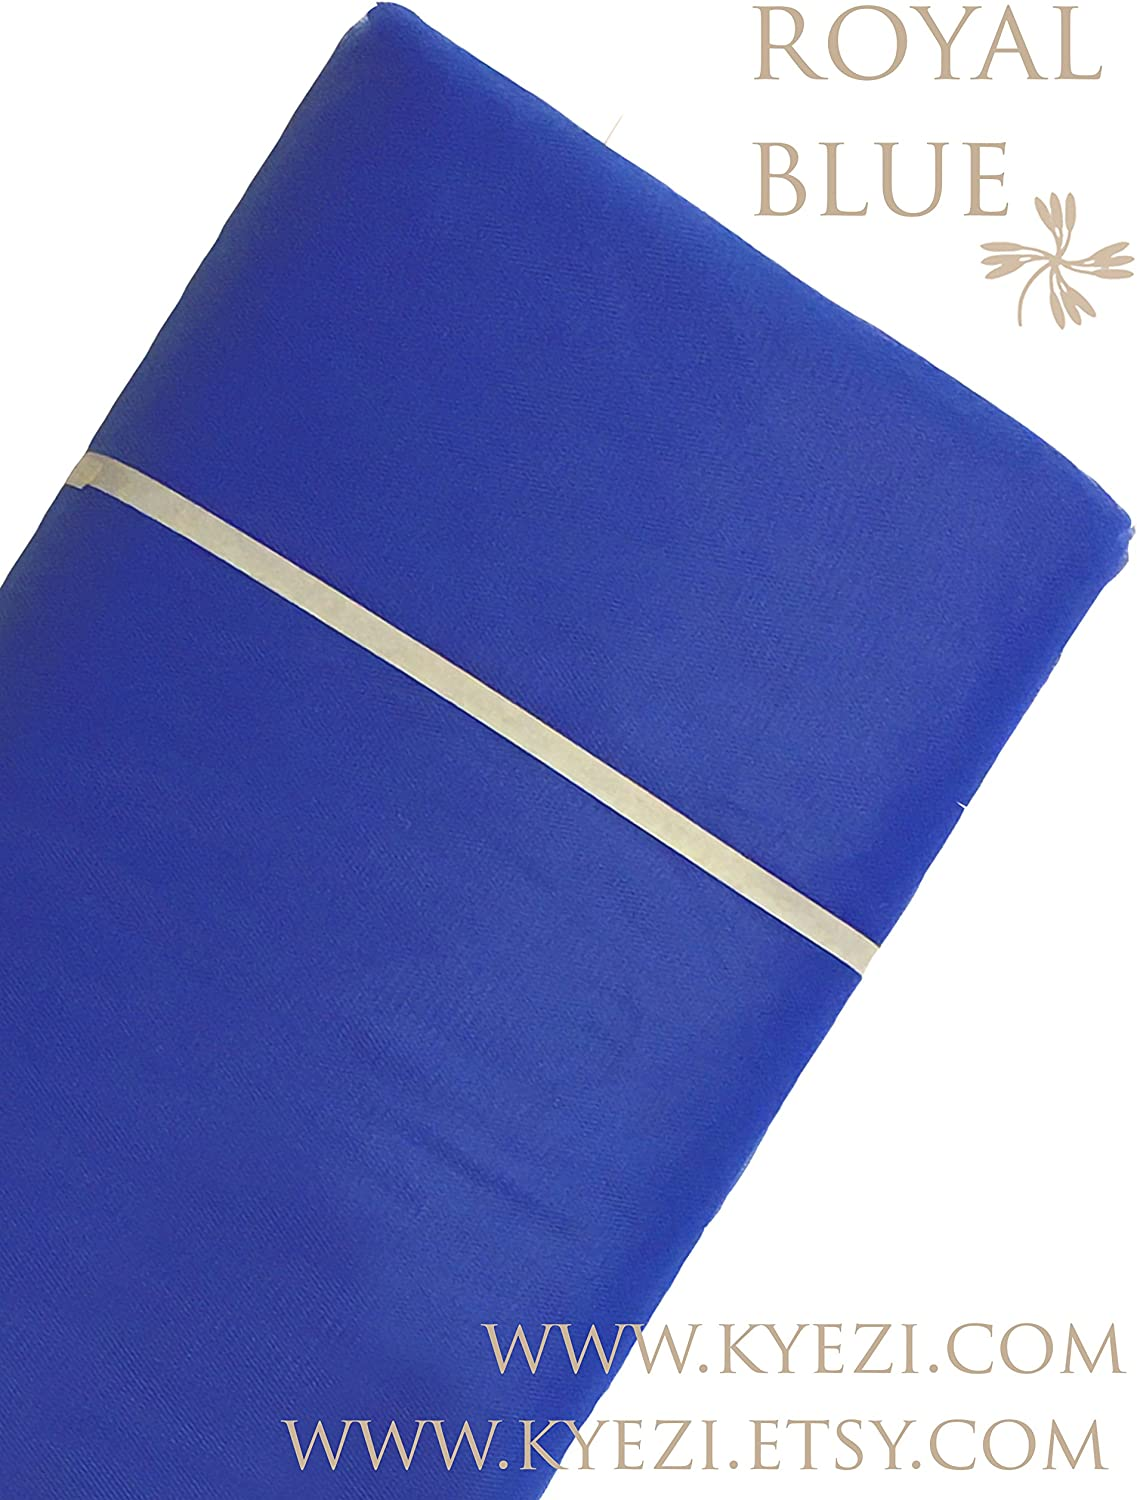 Craft And Party 120 ft Royal Blue Fabric Tulle Bolt for Wedding and Decoration 54 by 40 Yards